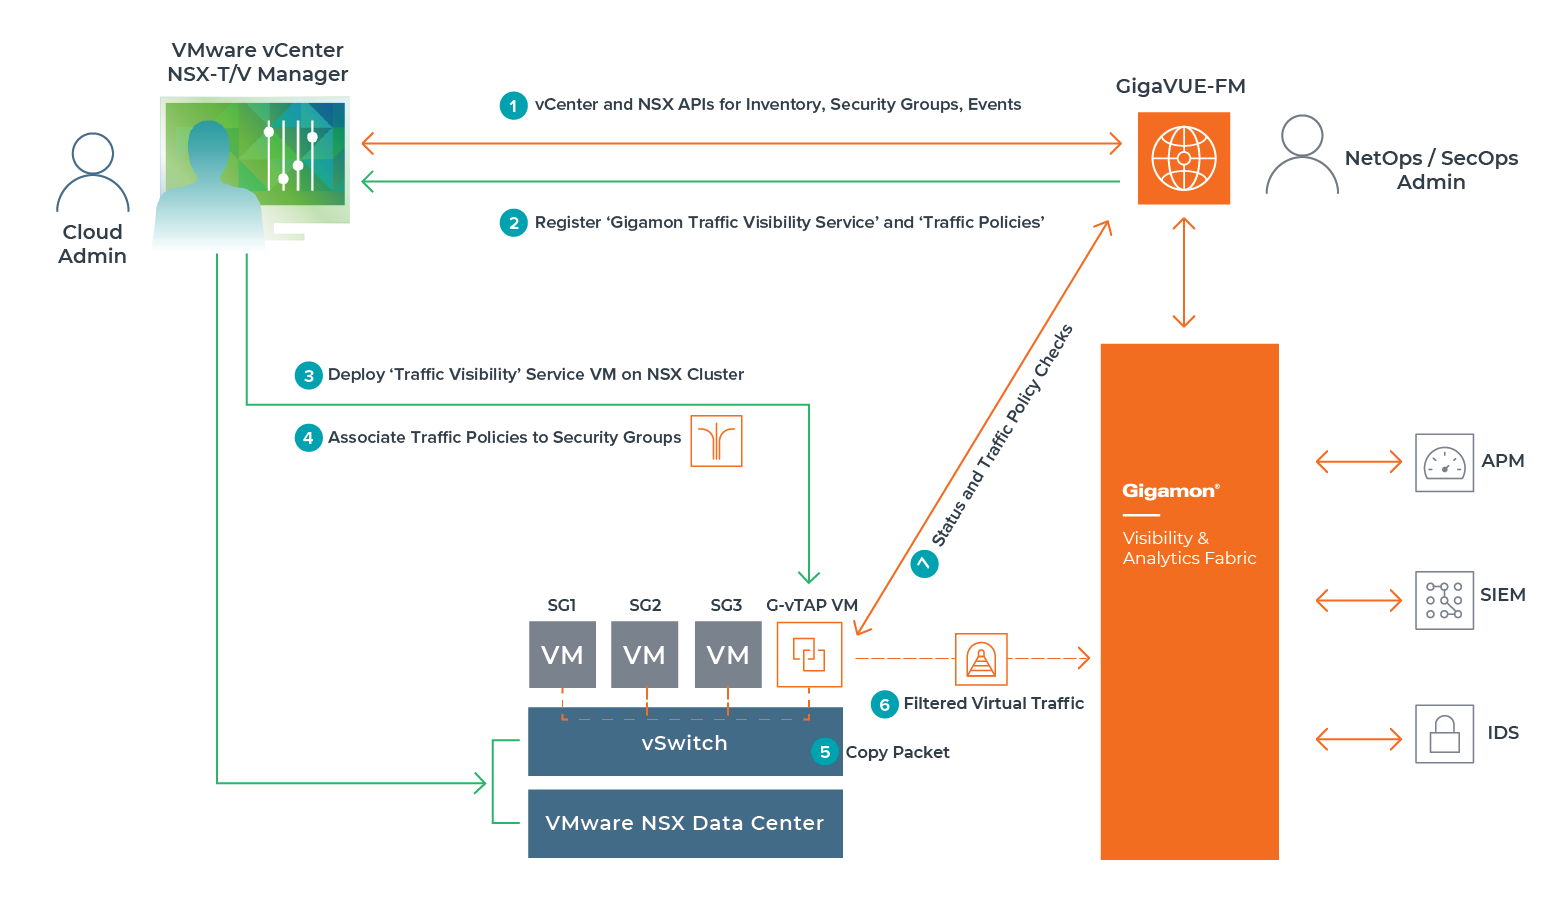 VMware NSX diagram